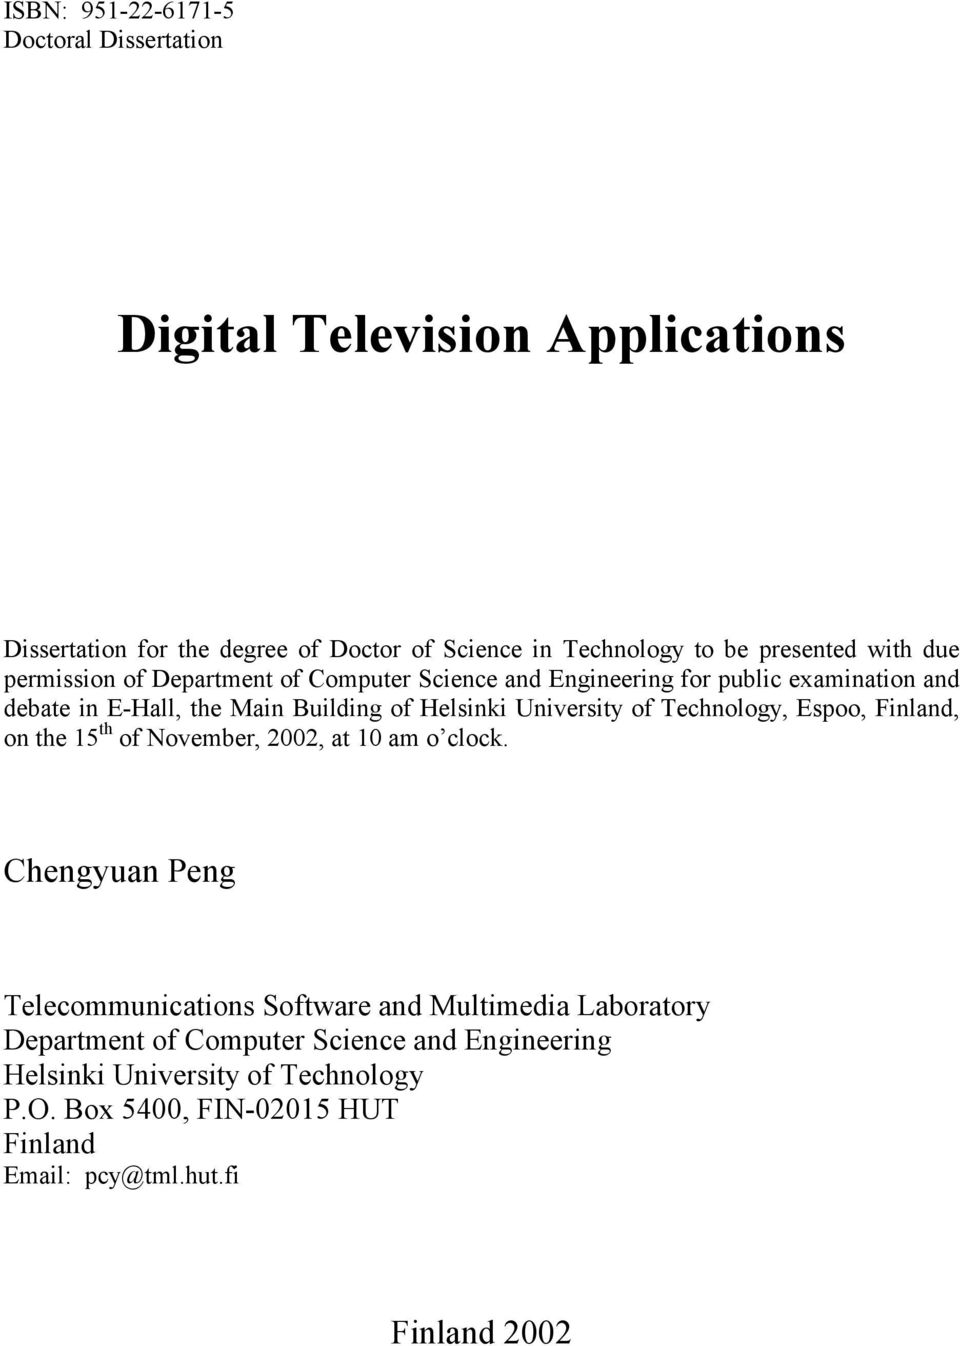 digital television thesis This project utilizes a case study approach to explore the various ways in which the portrayals of gay people have changed on american television three contemporary.